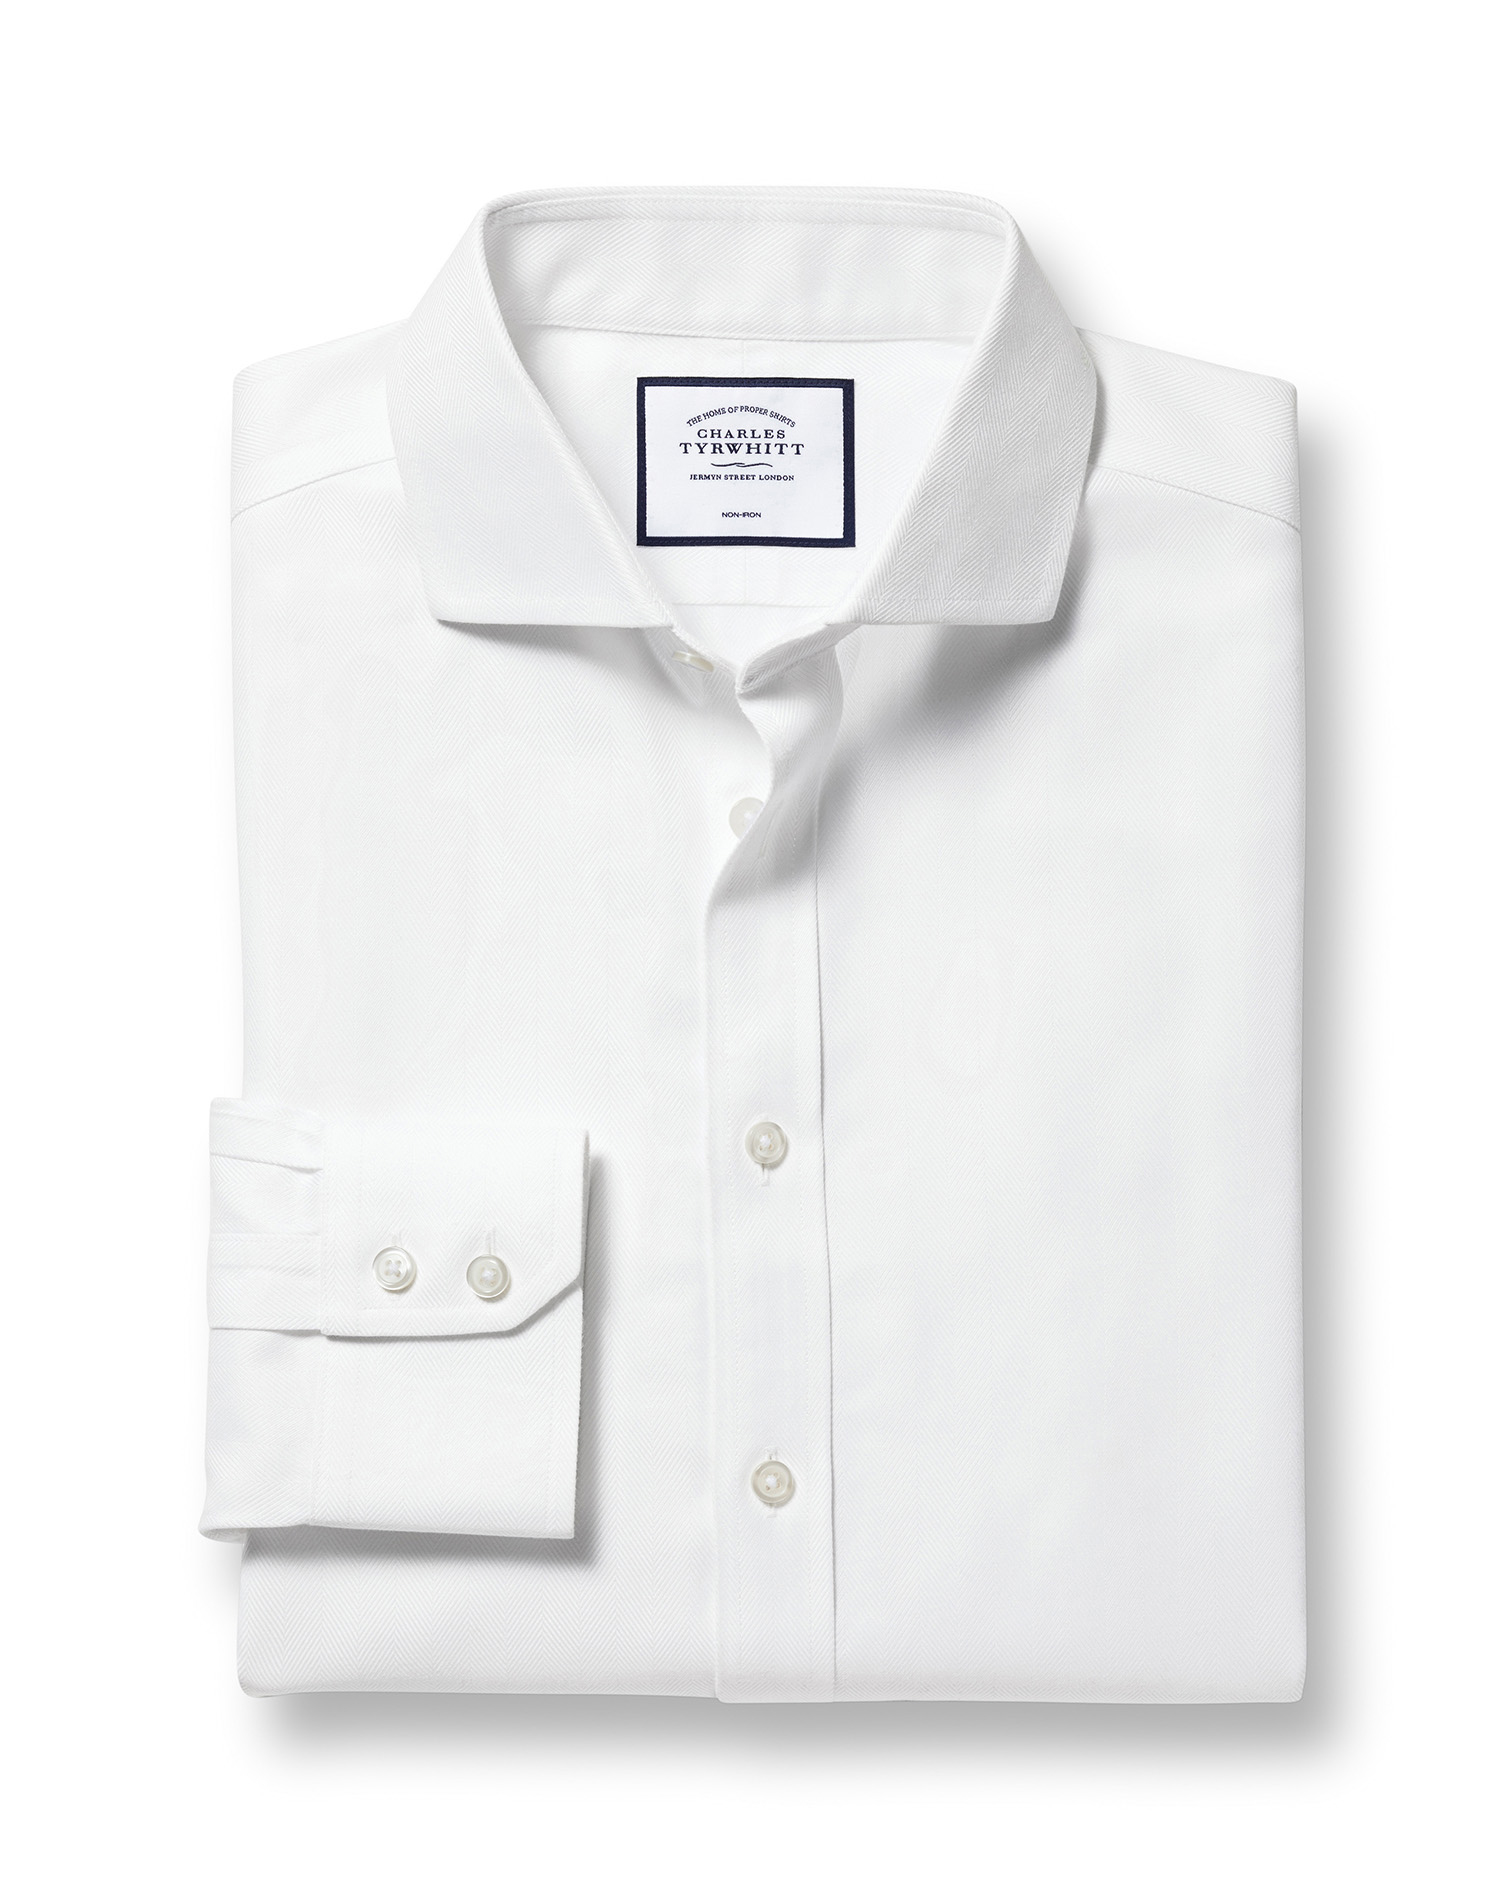 Extra Slim Fit Cutaway Non-Iron Herringbone White Cotton Formal Shirt Double Cuff Size 15/35 by Char